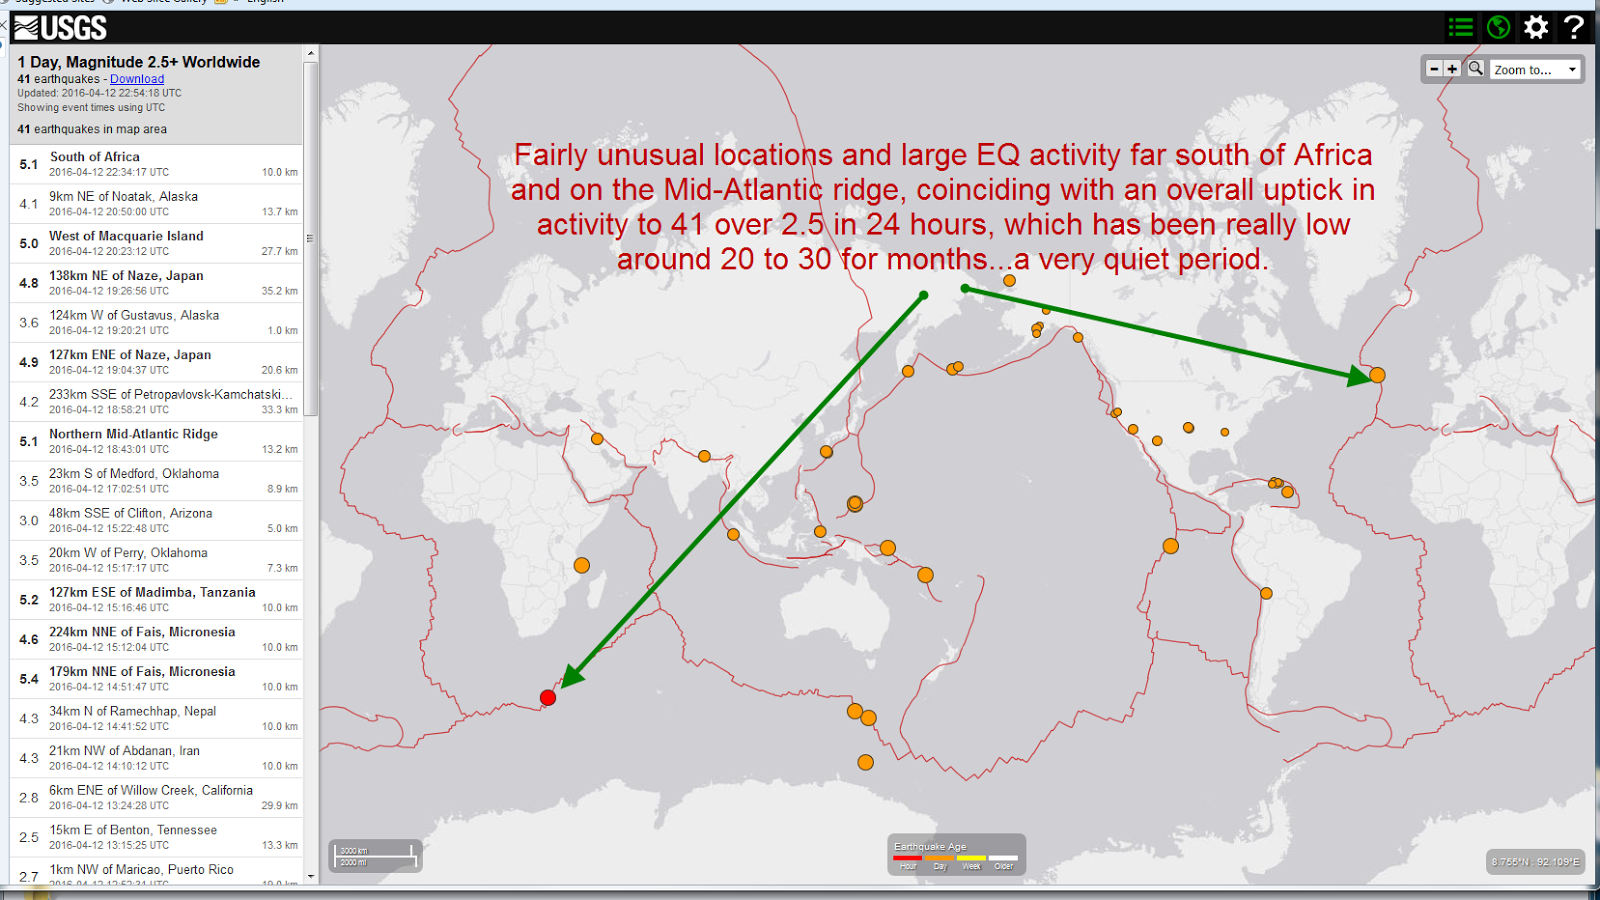 Nuke Pro Earthquake Alert Change In Activity Risk Of Swarms Monster Earthquakes Is Elevated